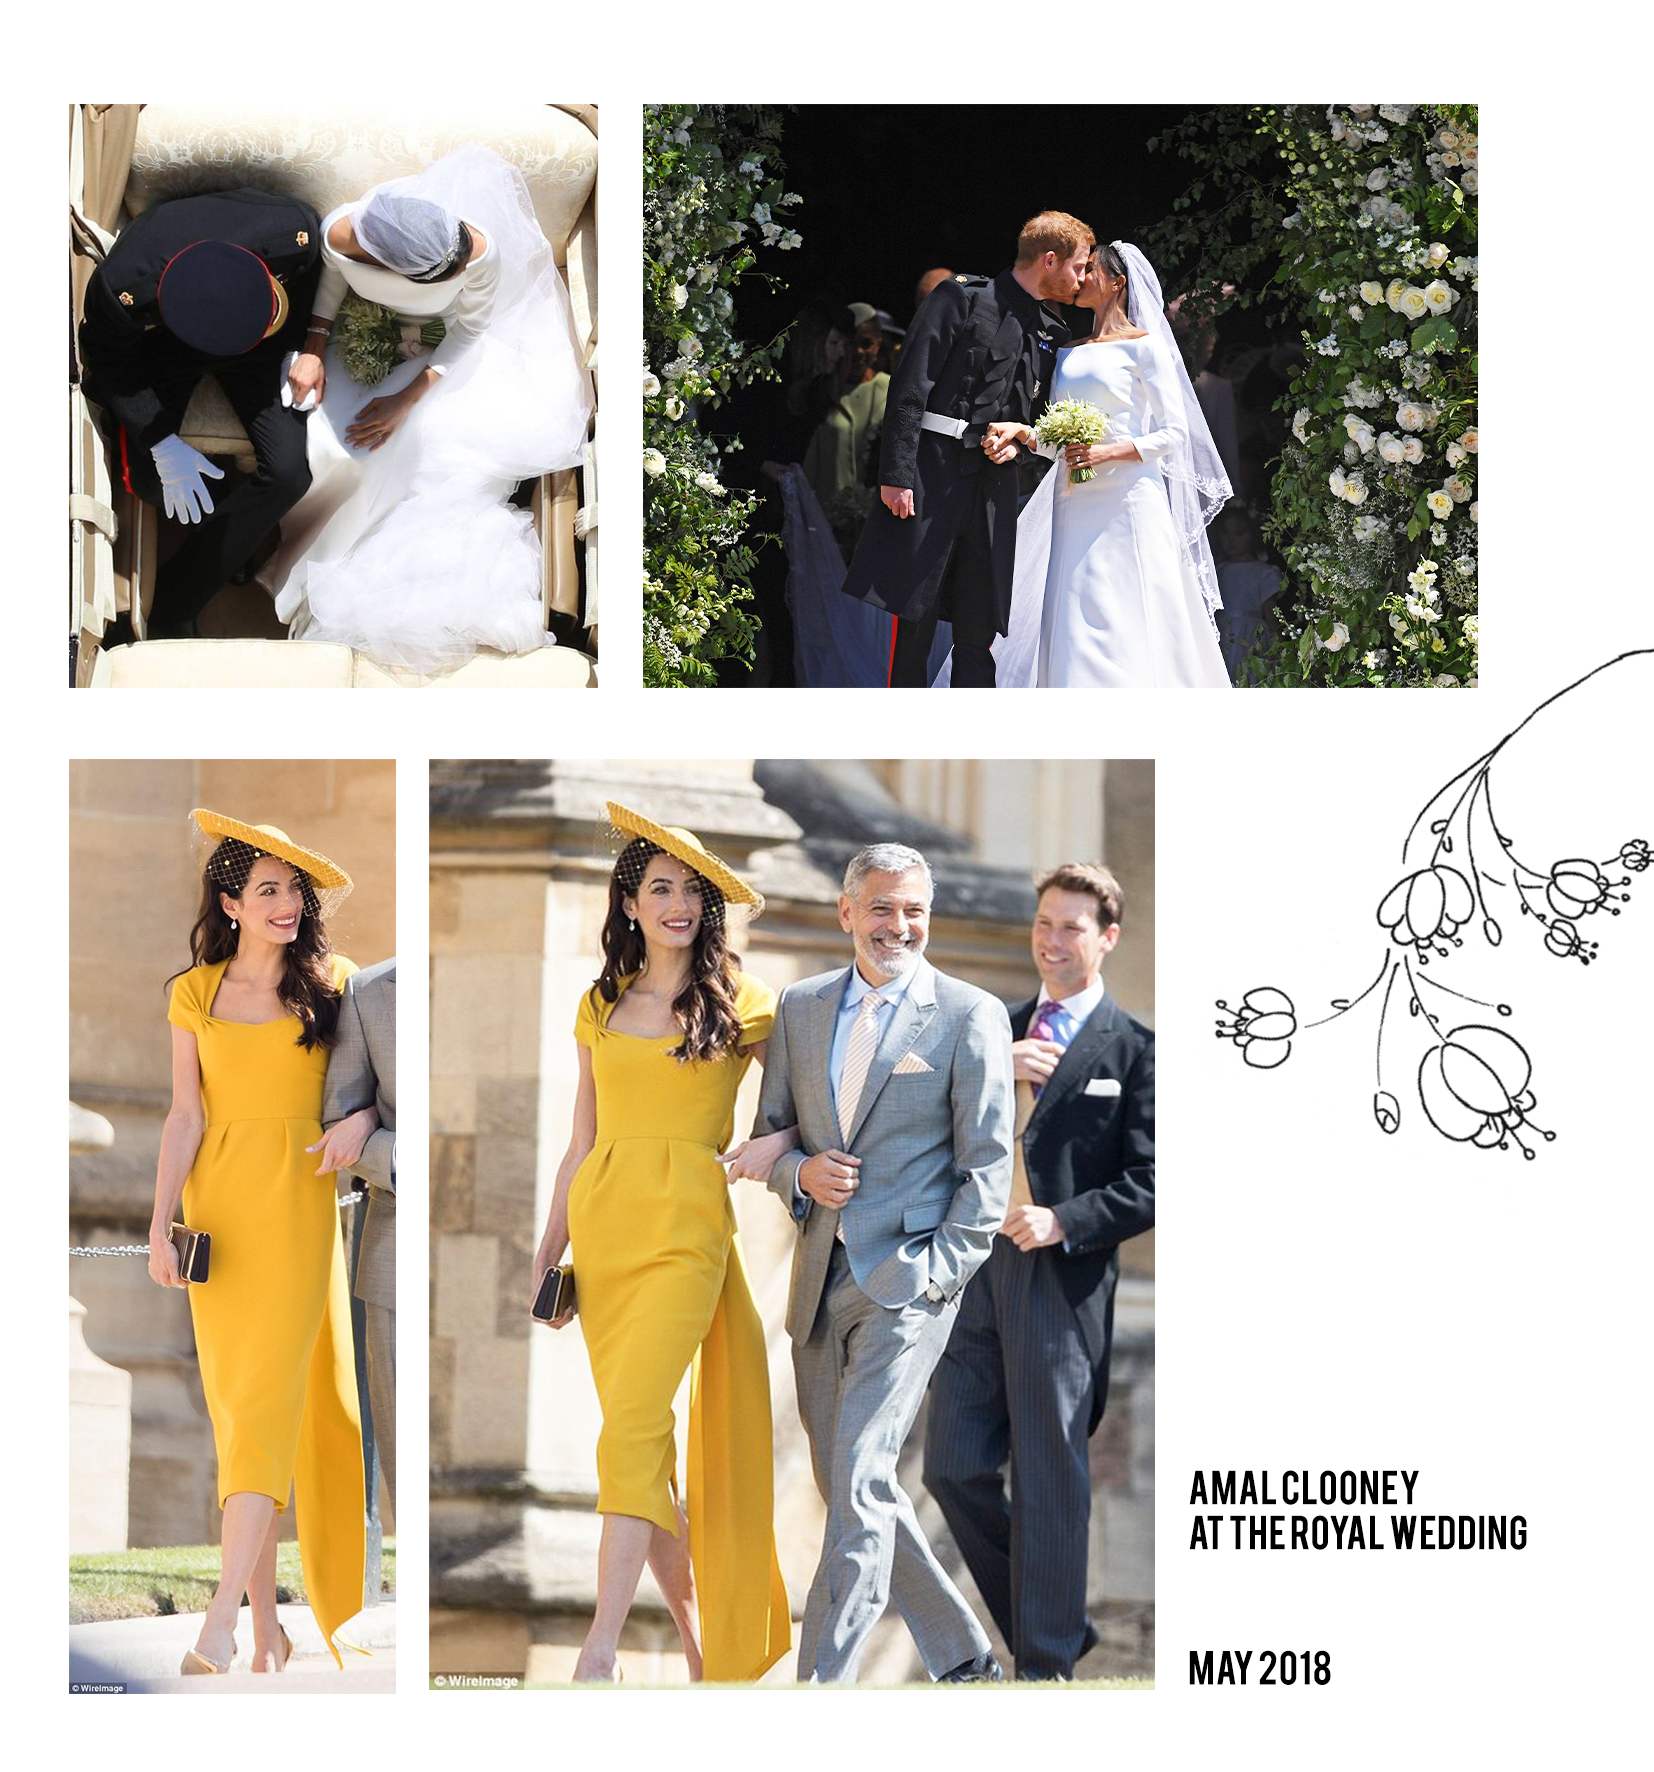 Amal Clooney in yellow dress at royal wedding 2018